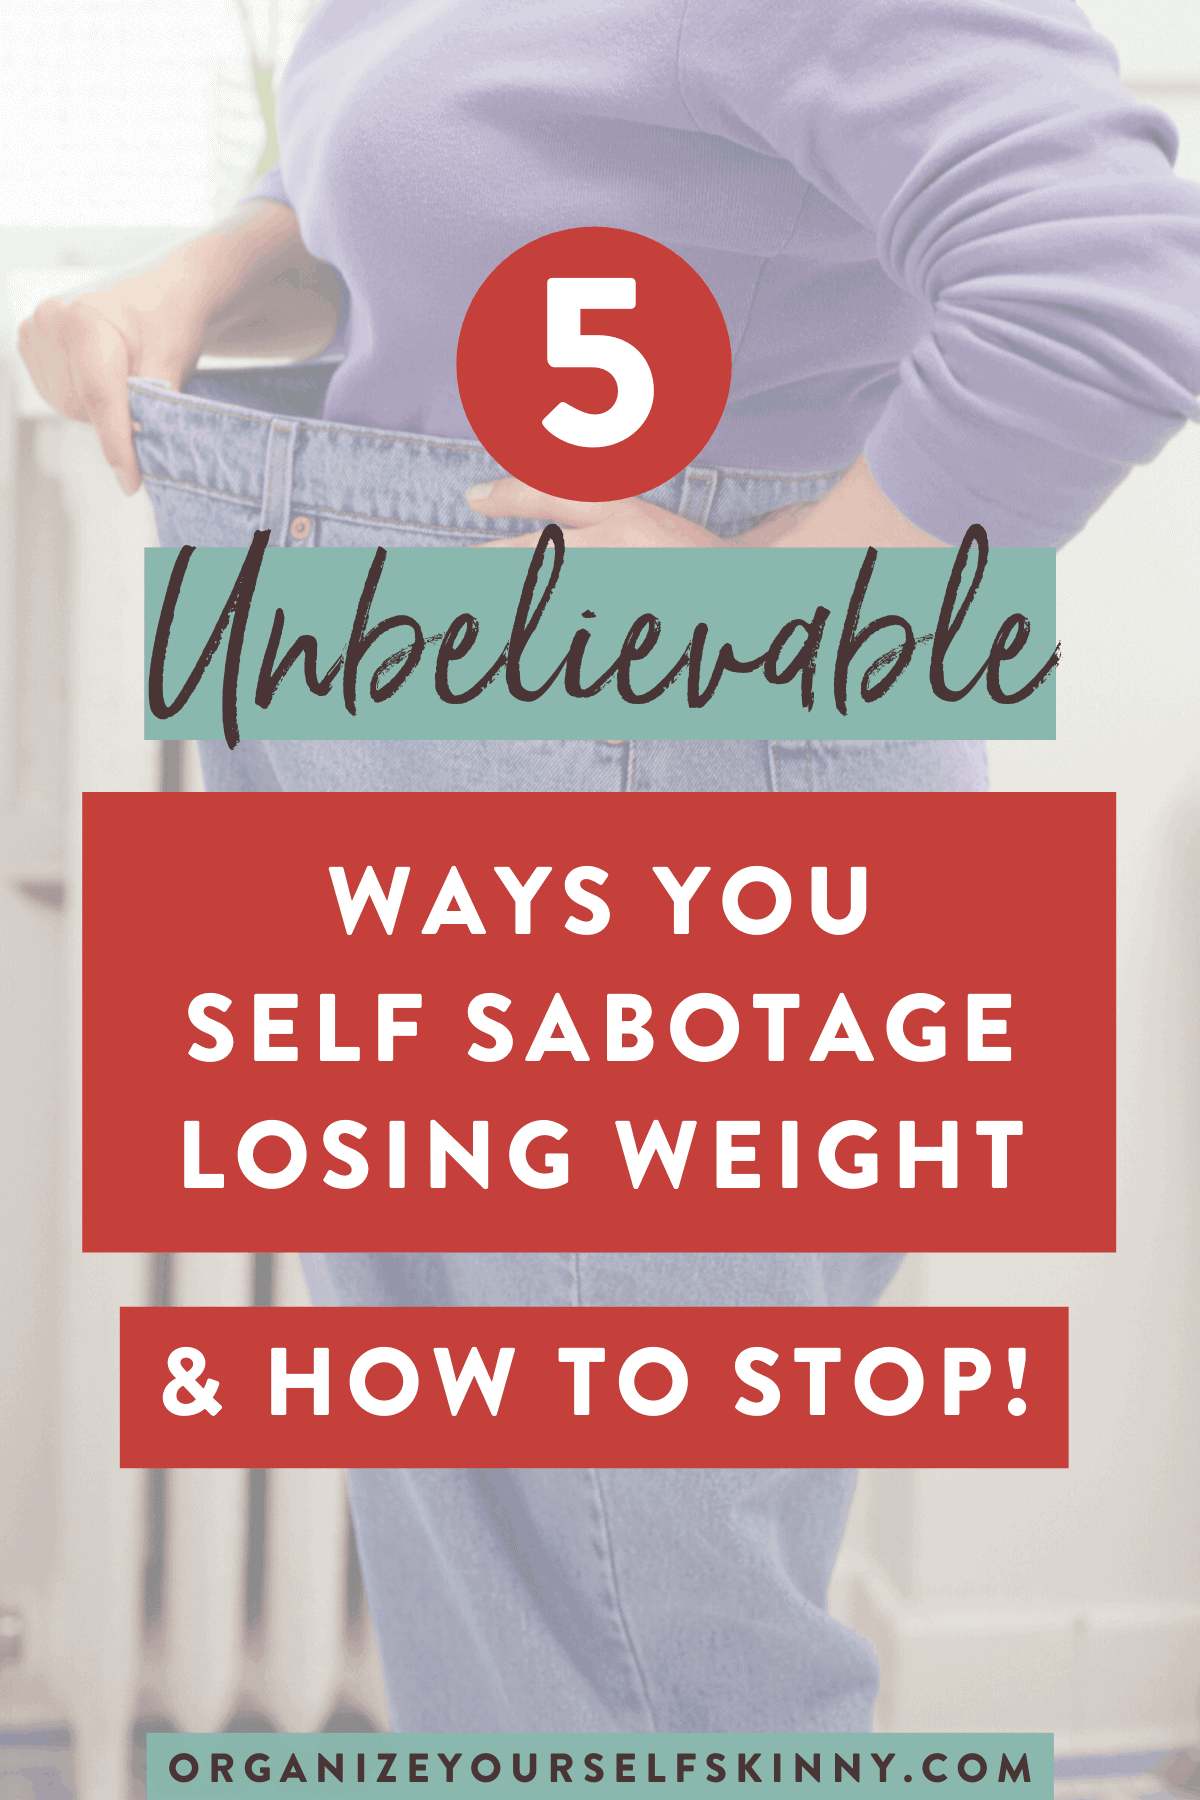 unbeliebable-ways-you-self-sabotage-losing-weight-how-to-stop